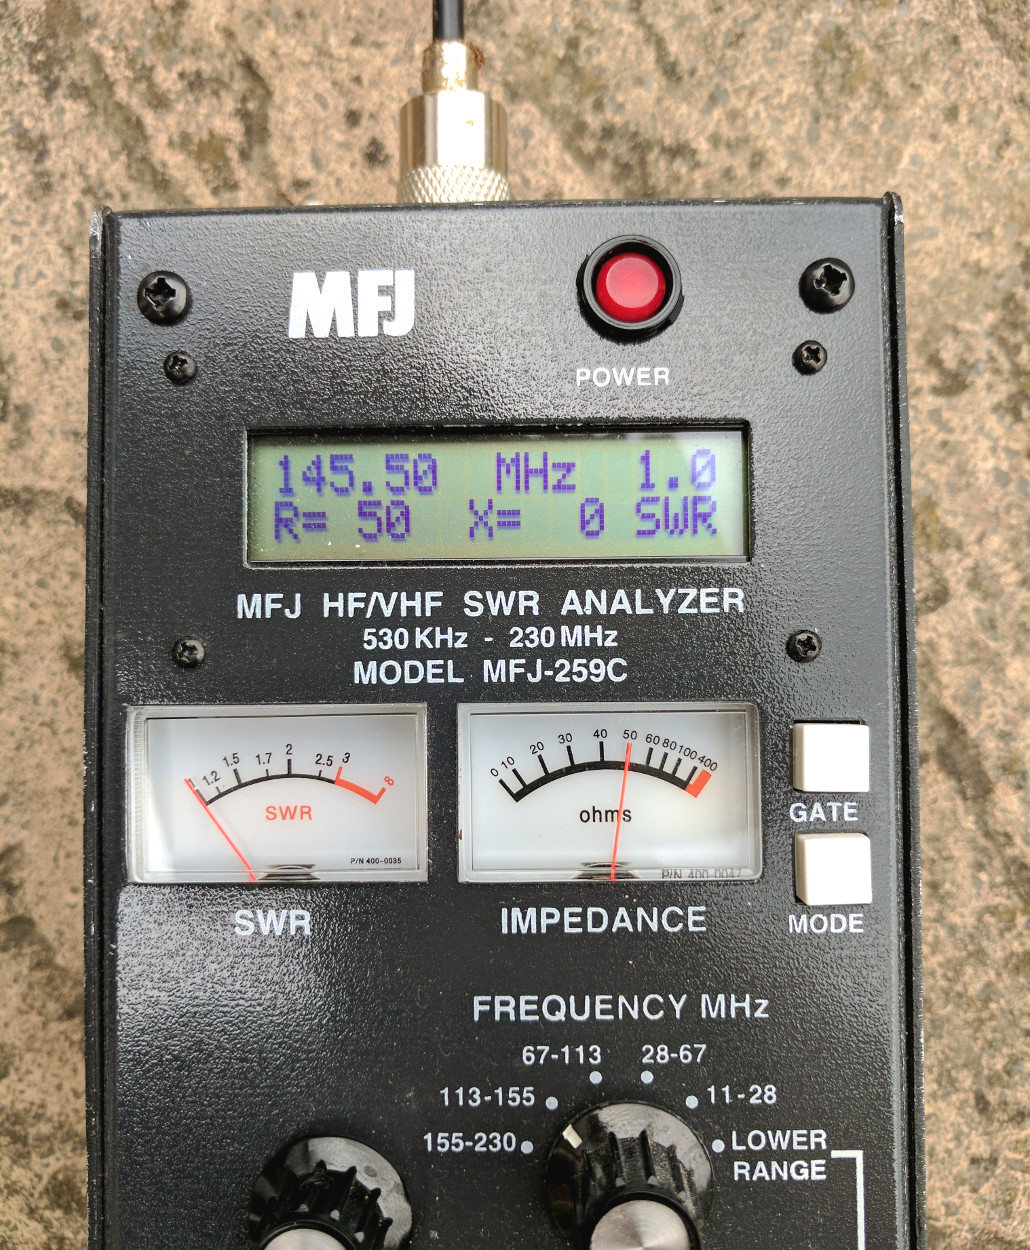 2m Quarter Wave Antenna on Analyser